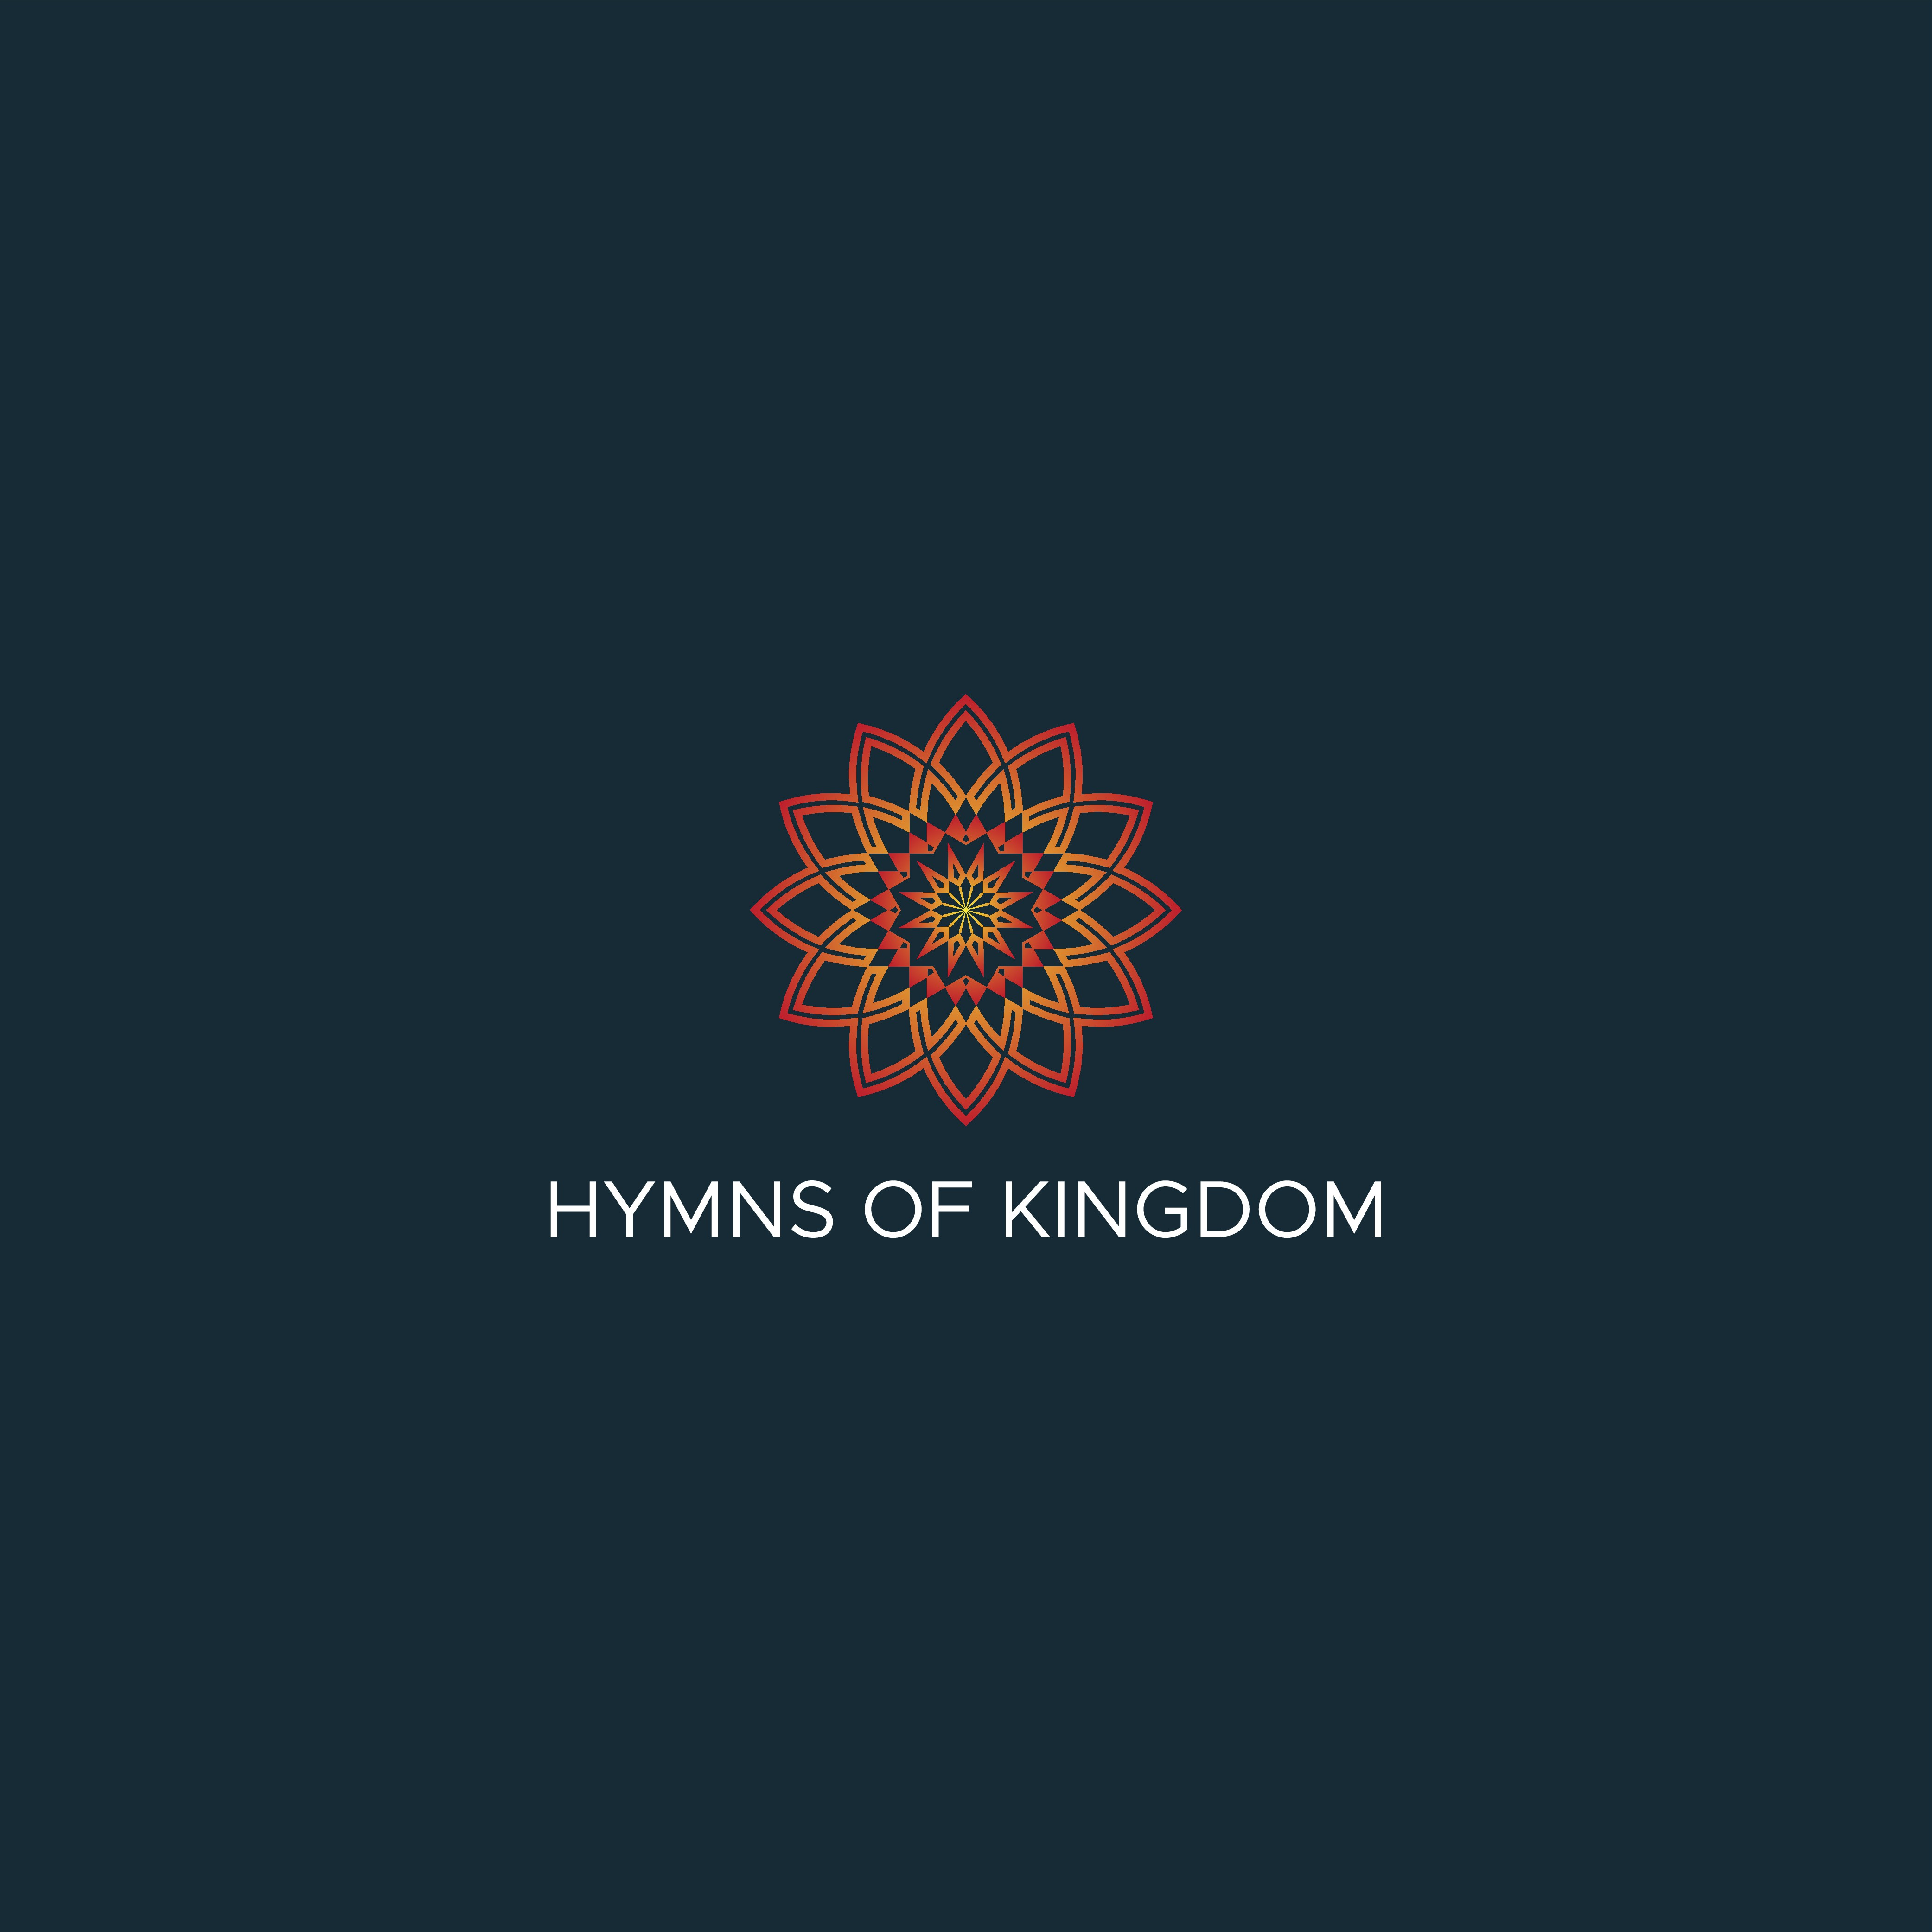 Hymns of Kingdom